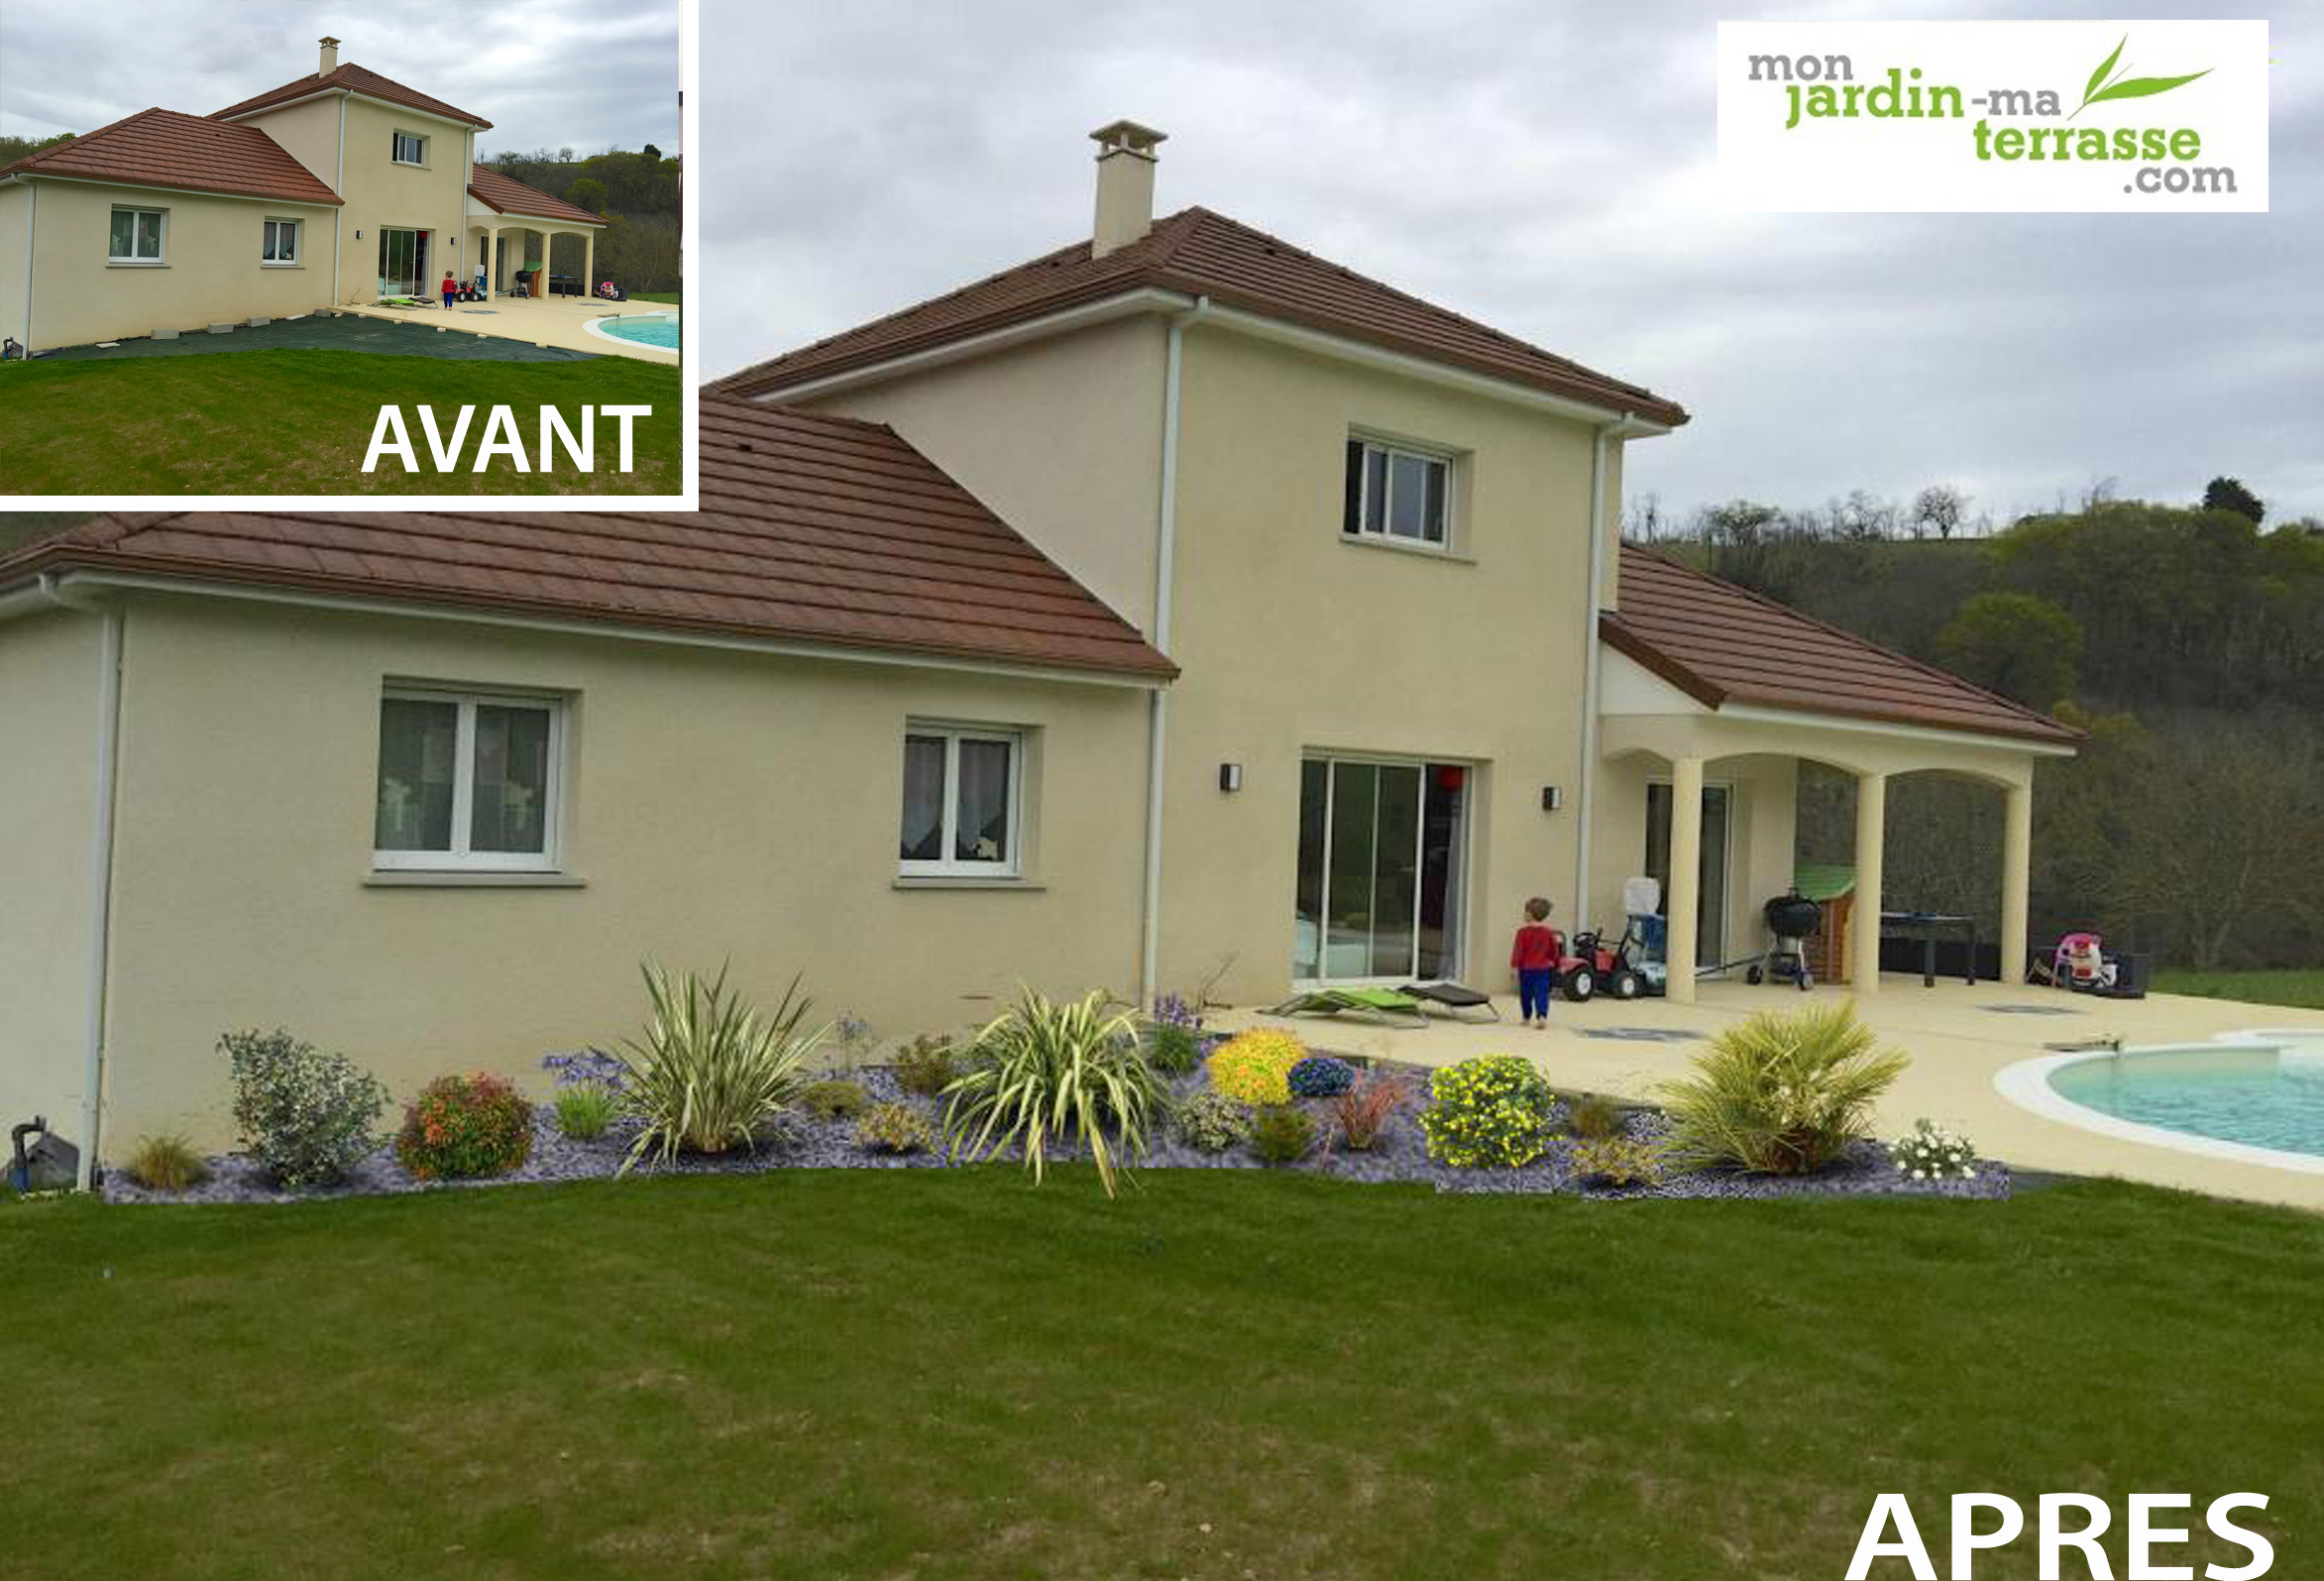 Am nagement ext rieur devant une maison monjardin for Idee amenagement exterieur devant maison